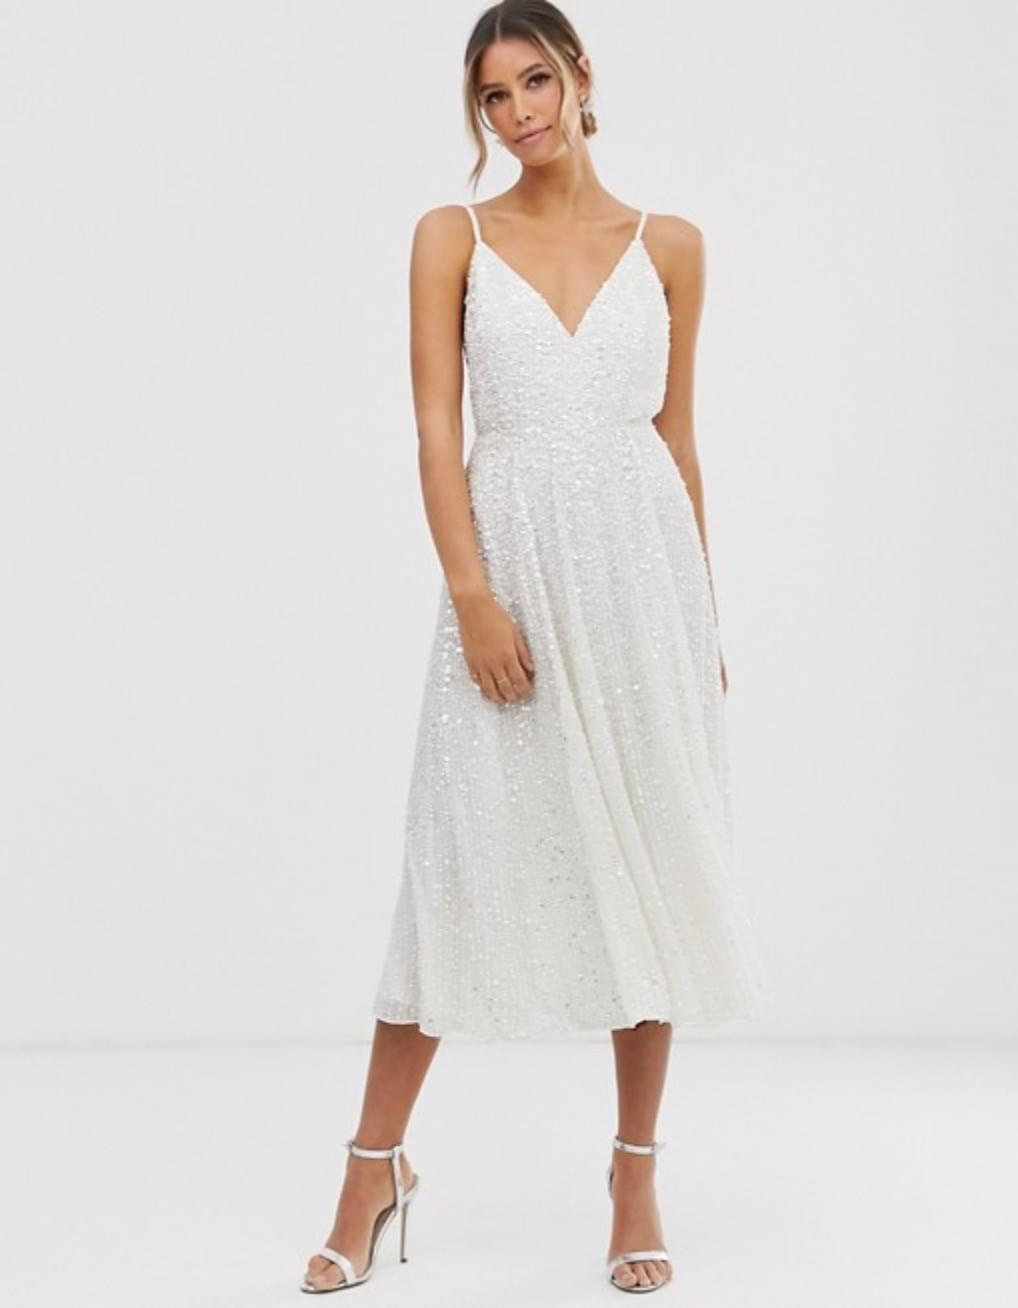 ASOS-Cityhall-White-Wedding-Dress